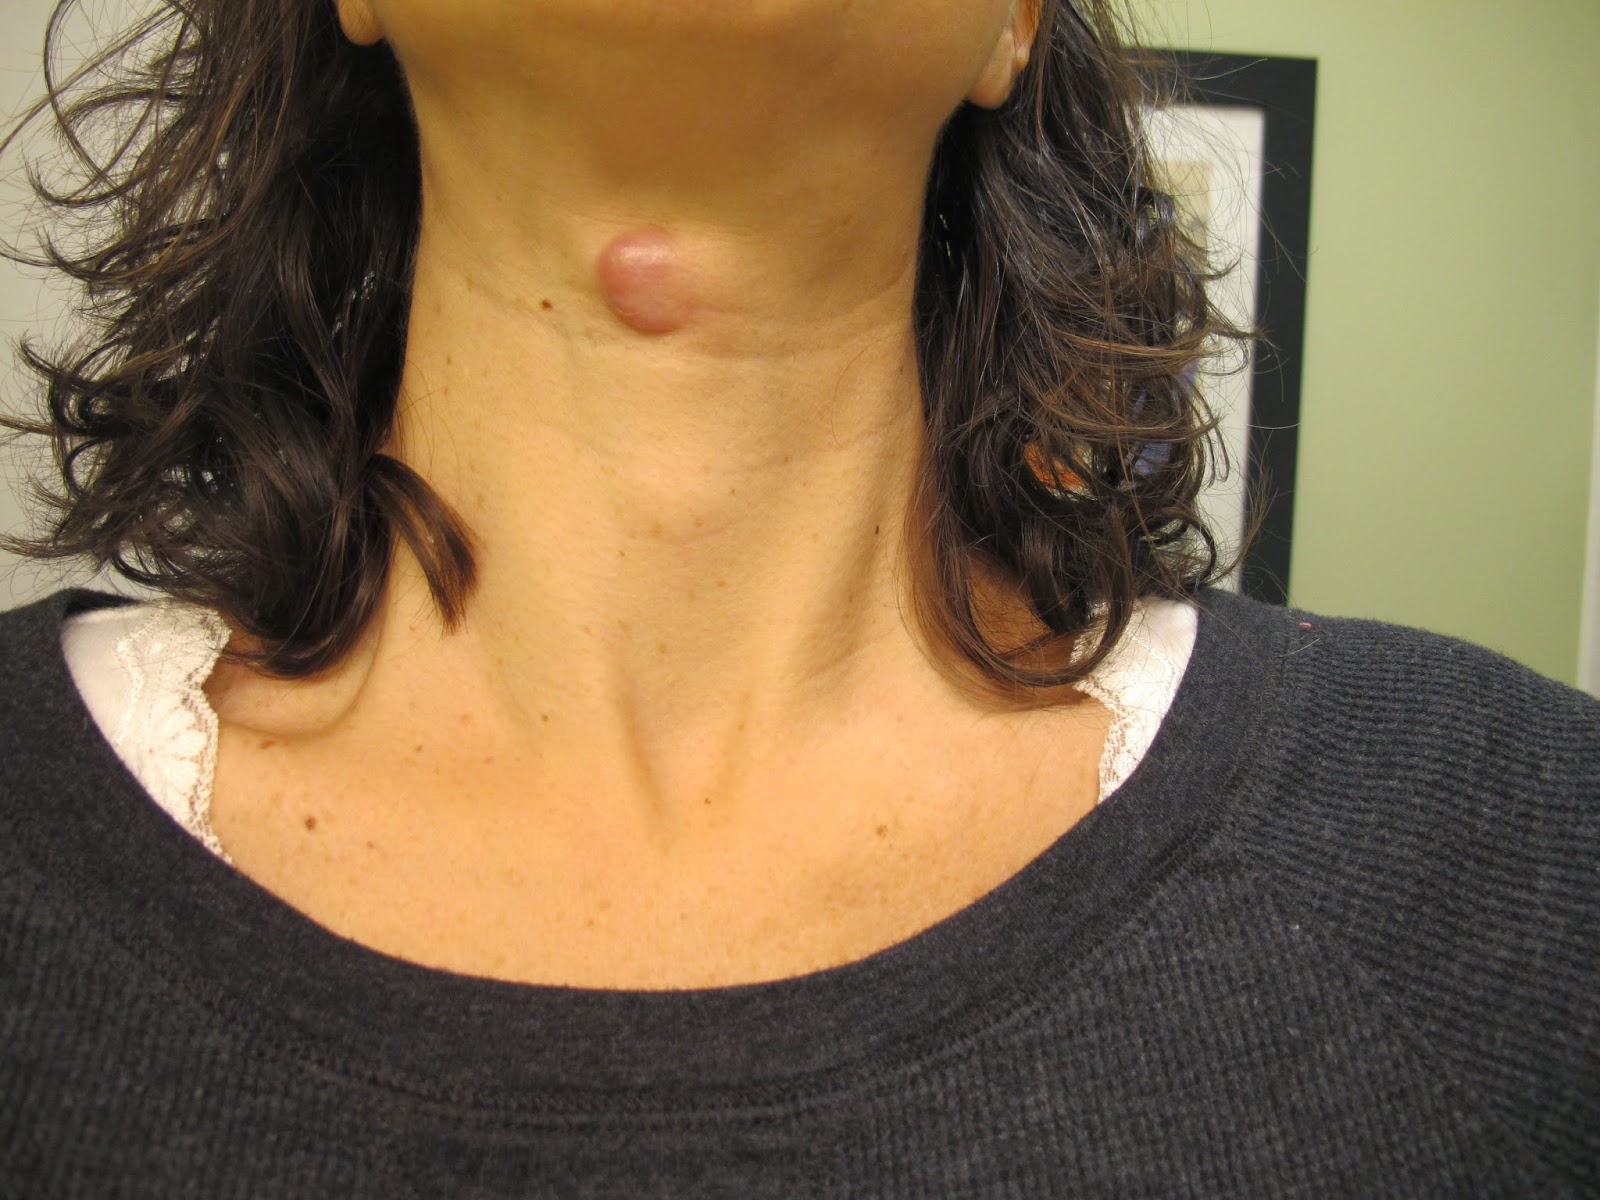 Linguine or Lo Mein Thyroglossal Duct Cyst  Sistrunk Procedure